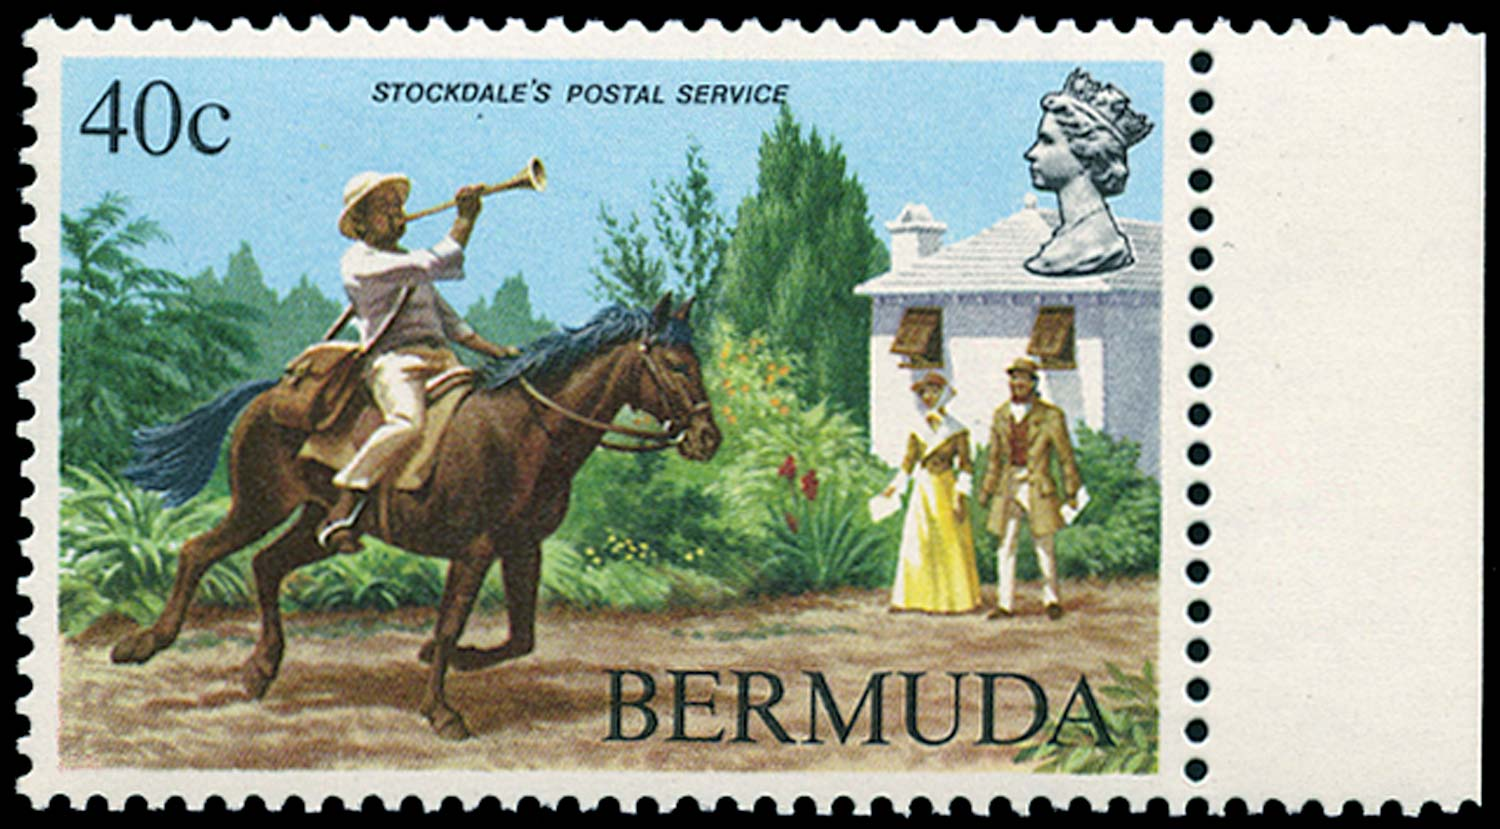 BERMUDA 1984  SG471w Mint Postal Service 40c watermark sideways inverted